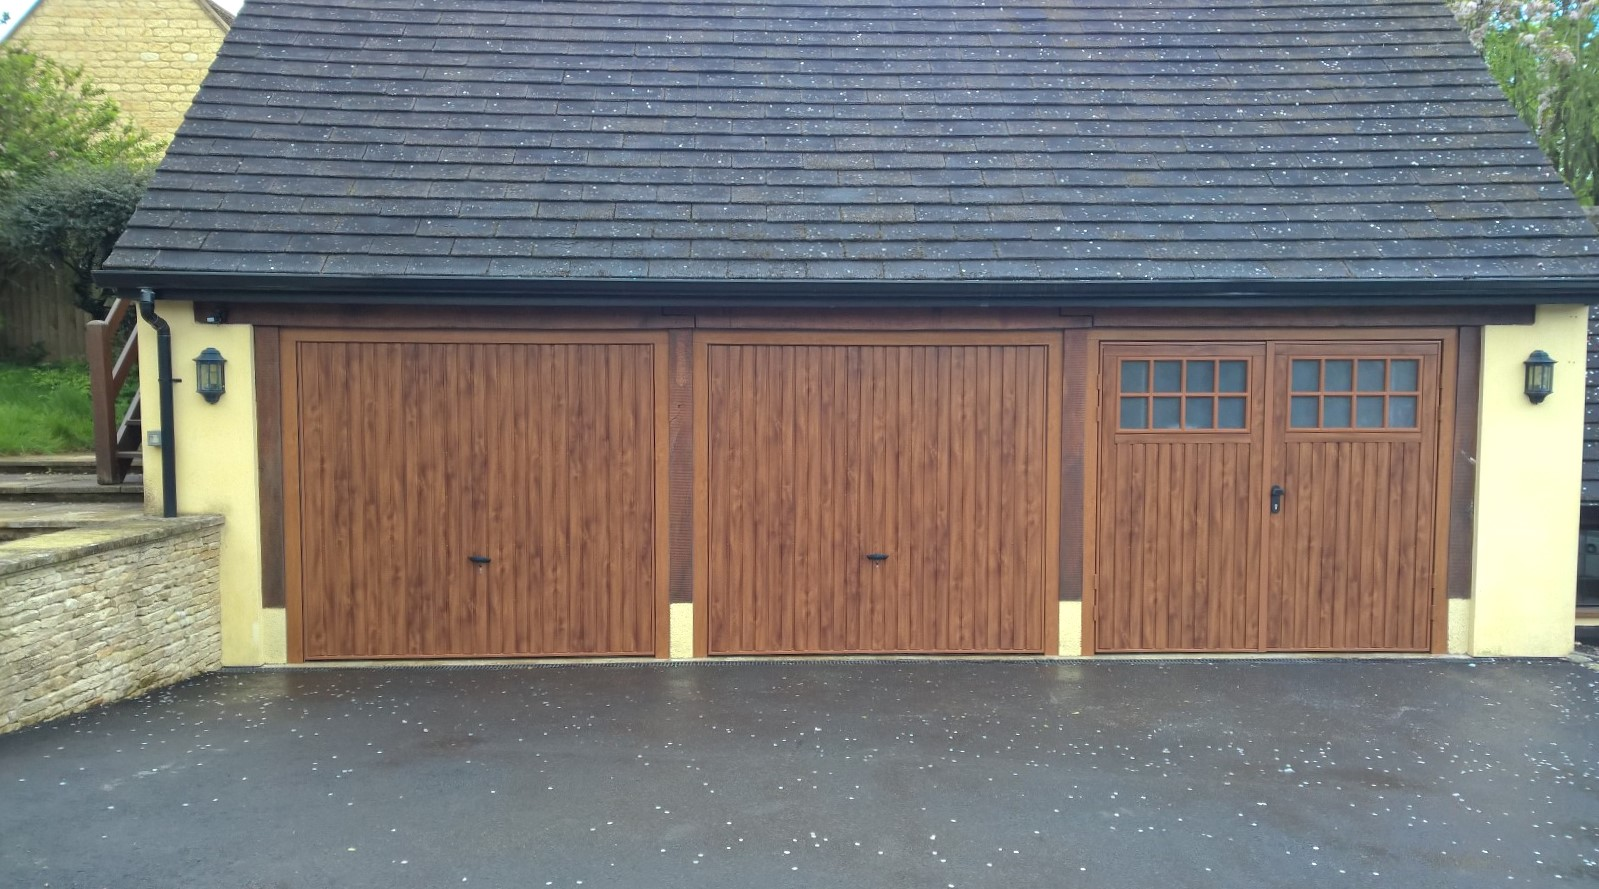 889 #A3A922 Trio / Triple Bay Golden Oak Garage Doors picture/photo Garage Doors Near Me 37391599